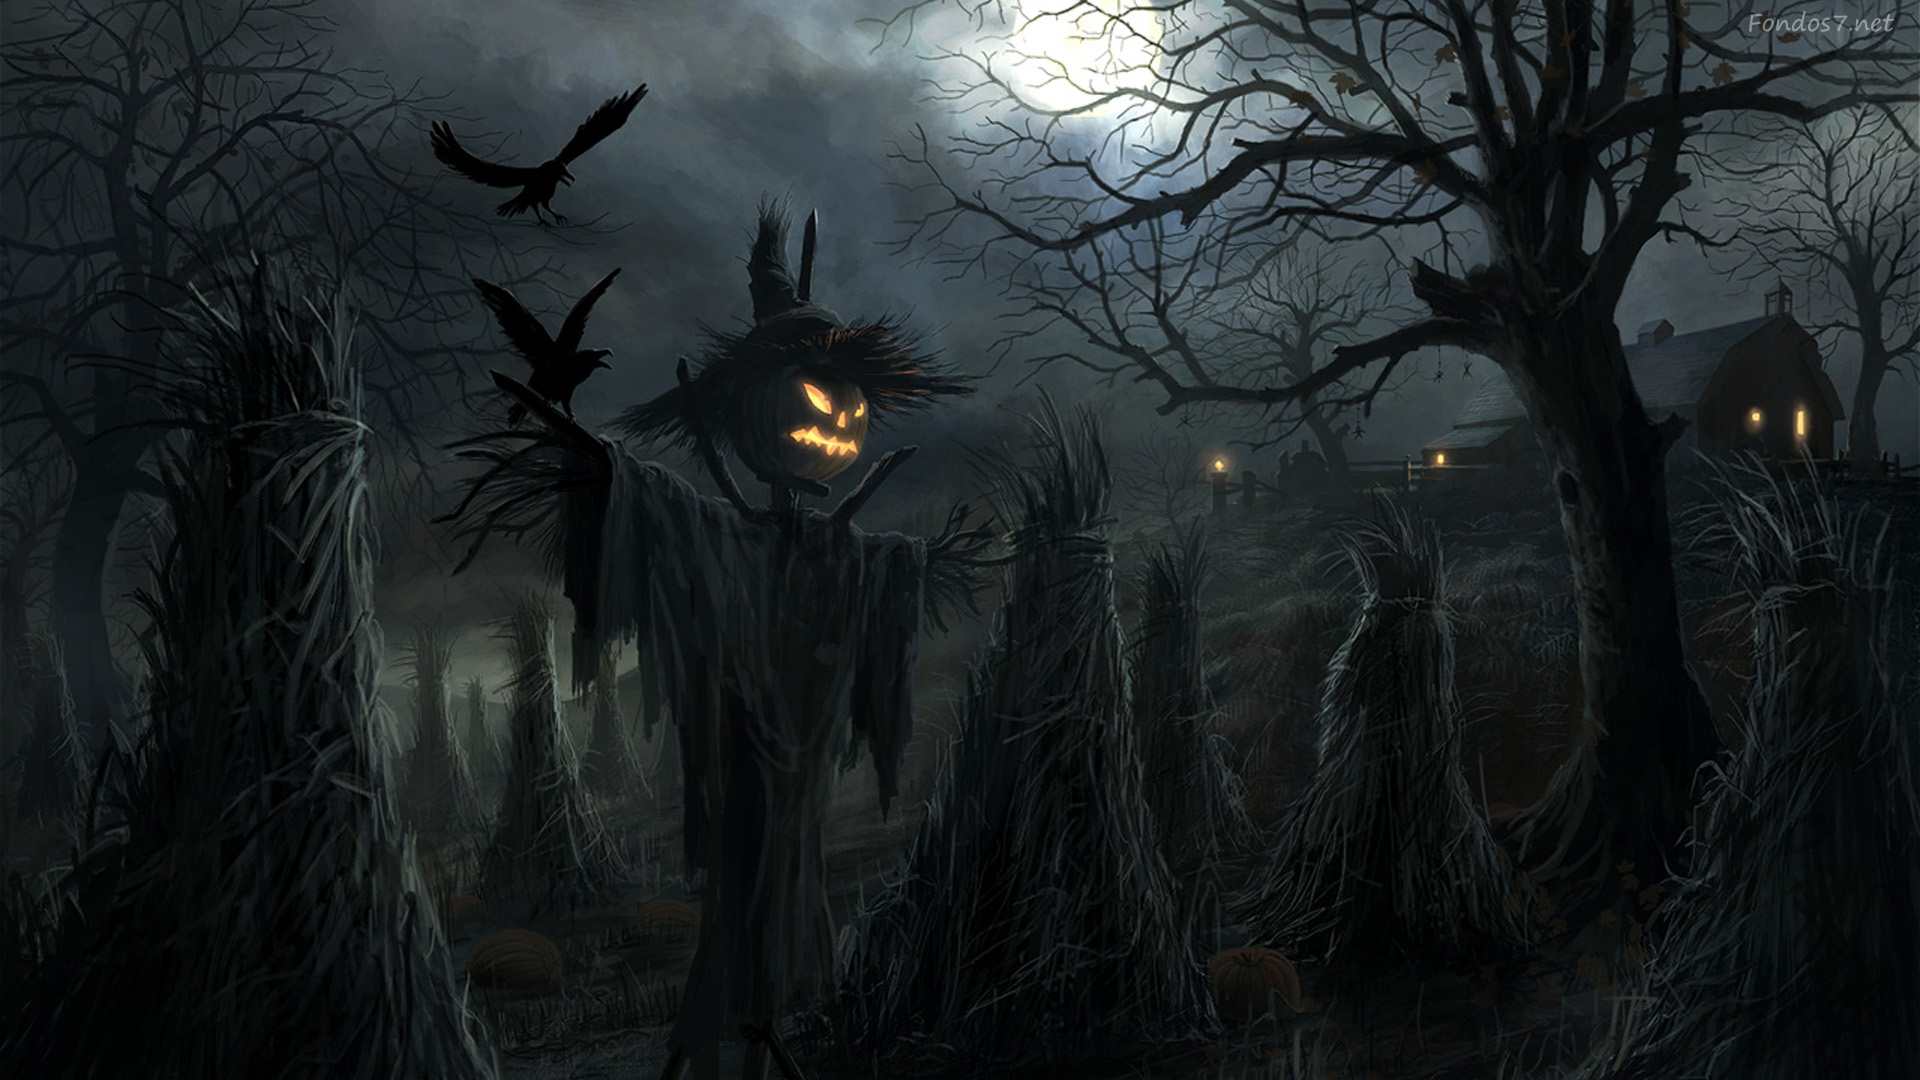 Halloween 2013 wallpaper collection The Windows Site for 1920x1080